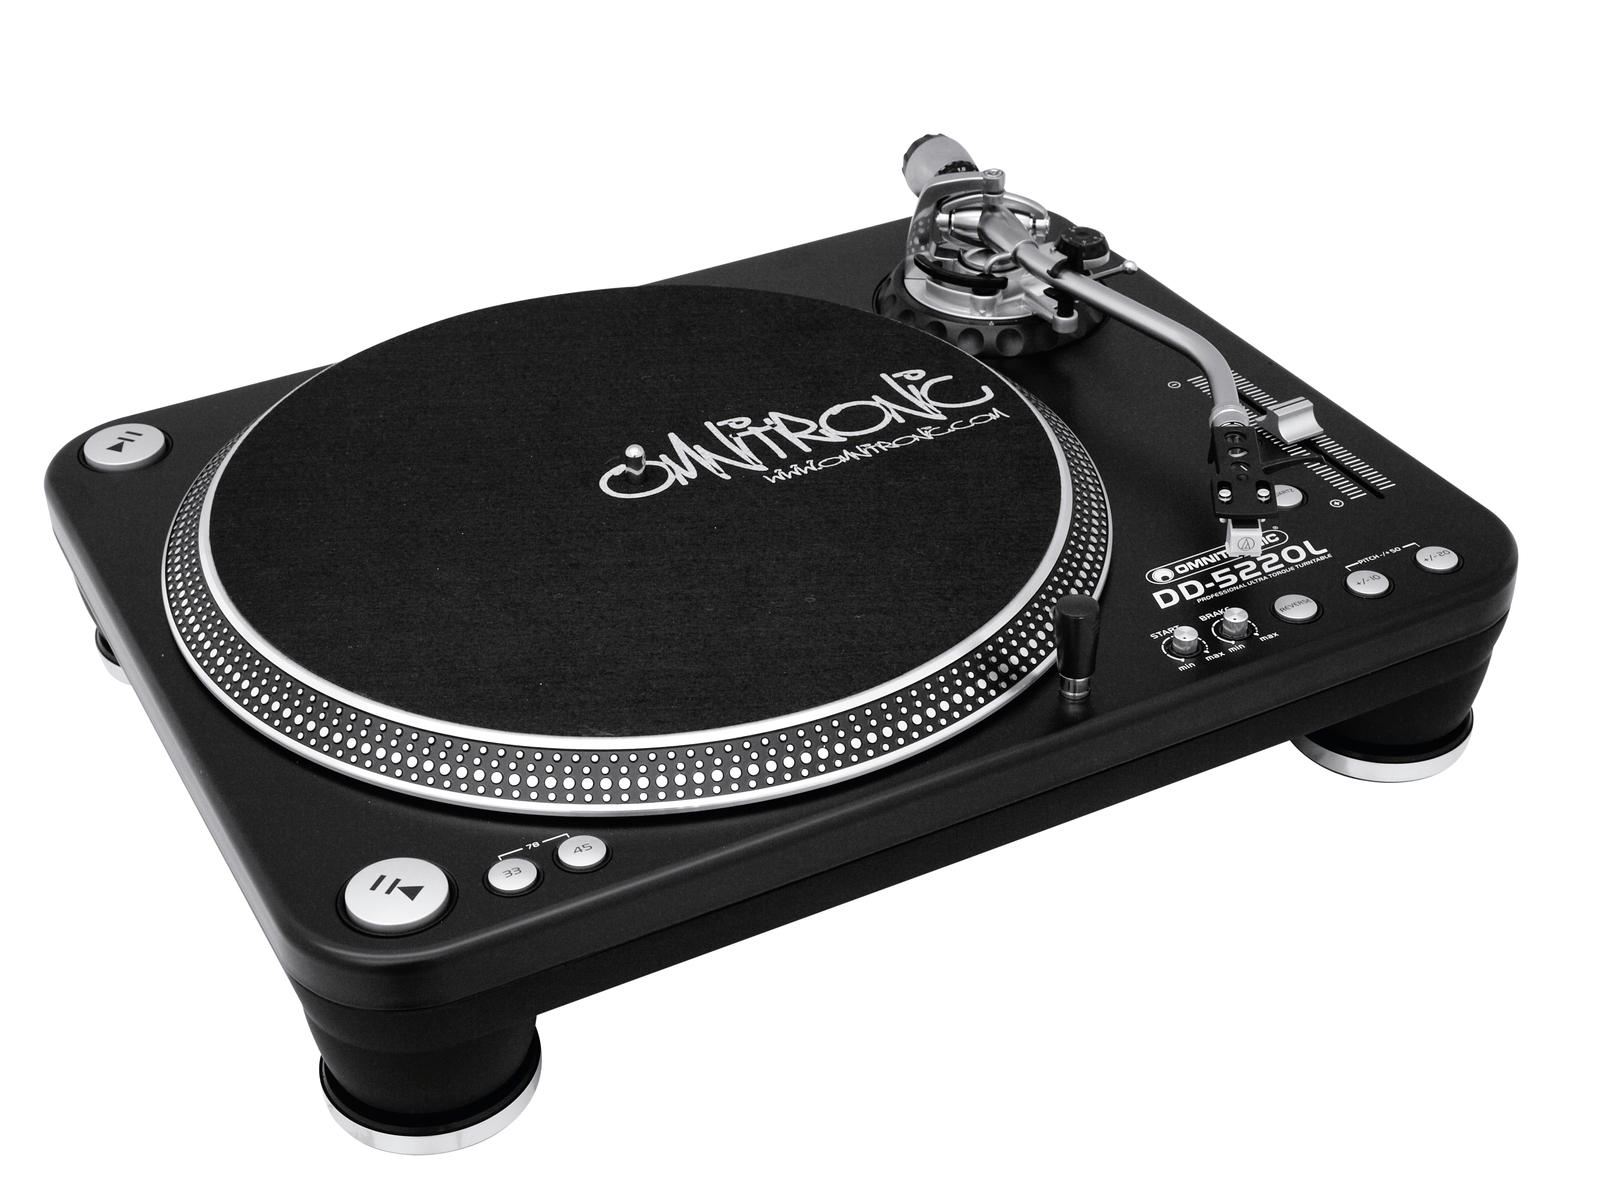 Turntable Platter direct drive OMNITRONIC DD-5220L